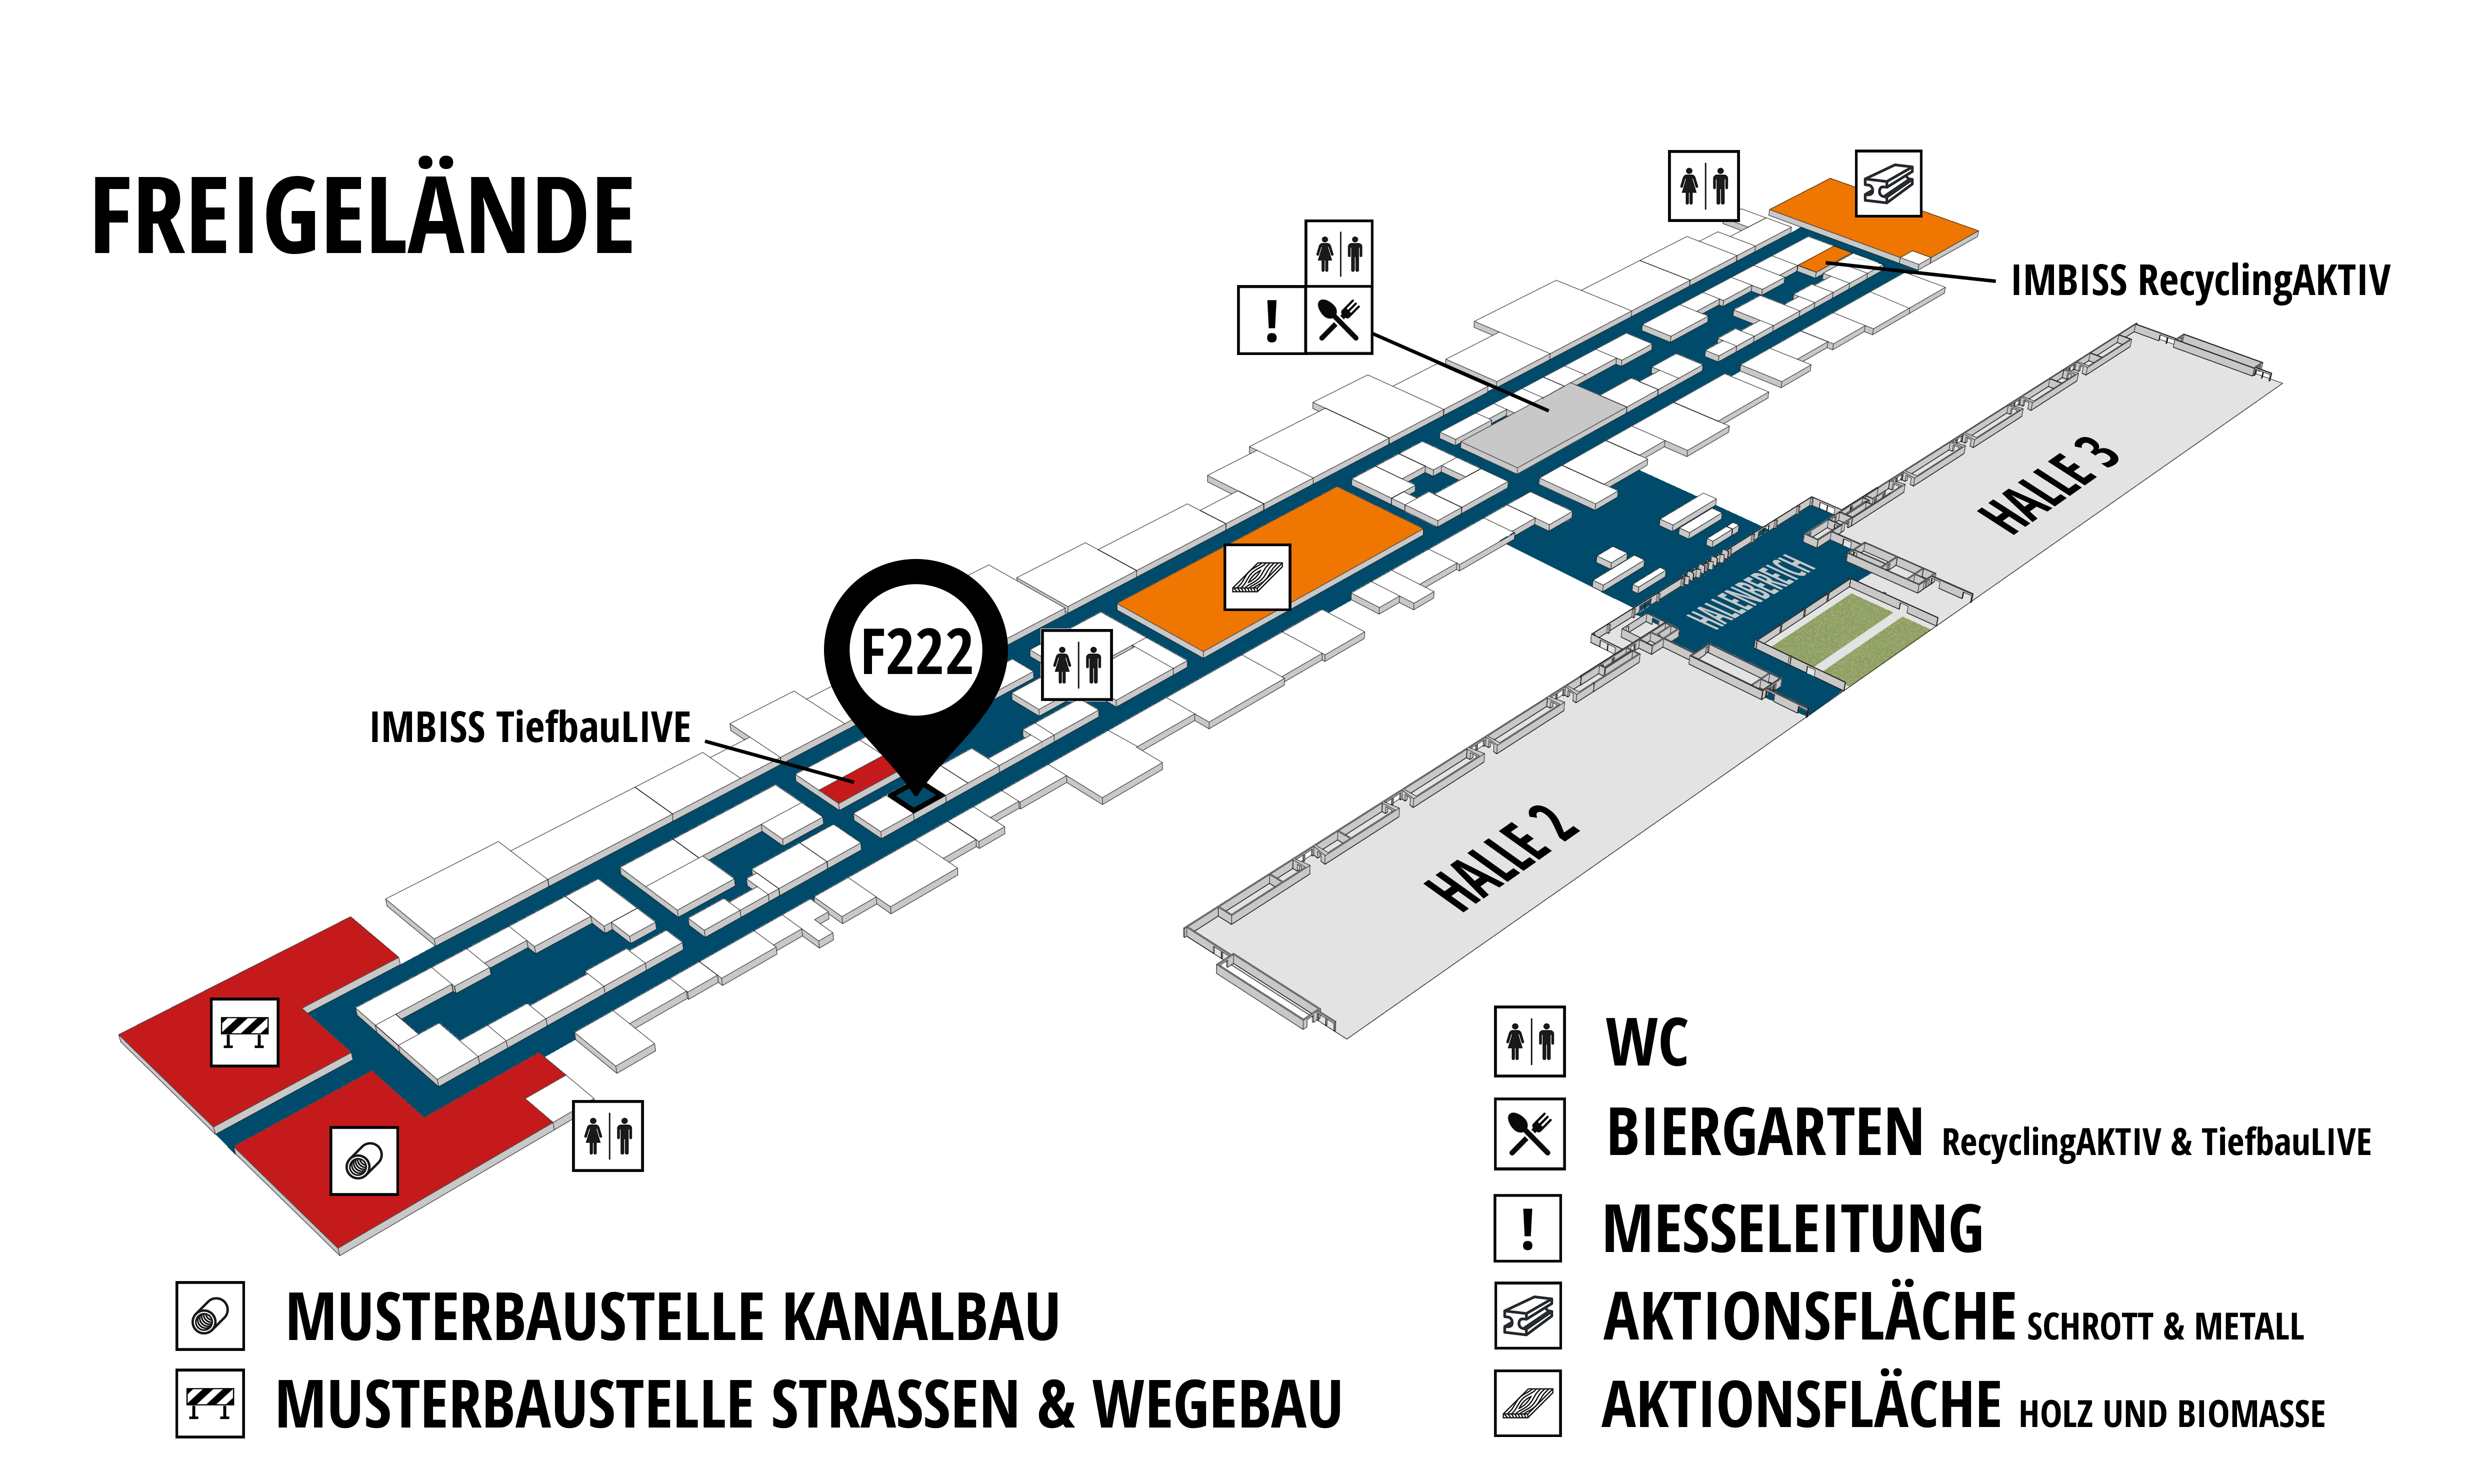 RecyclingAKTIV & TiefbauLIVE 2019. The Demonstration Trade Fairs ||Demonstration trade fair for waste removal and recycling. Demonstration trade fair for road construction and civil engineering. hall map (Outdoor area (east)): stand F222